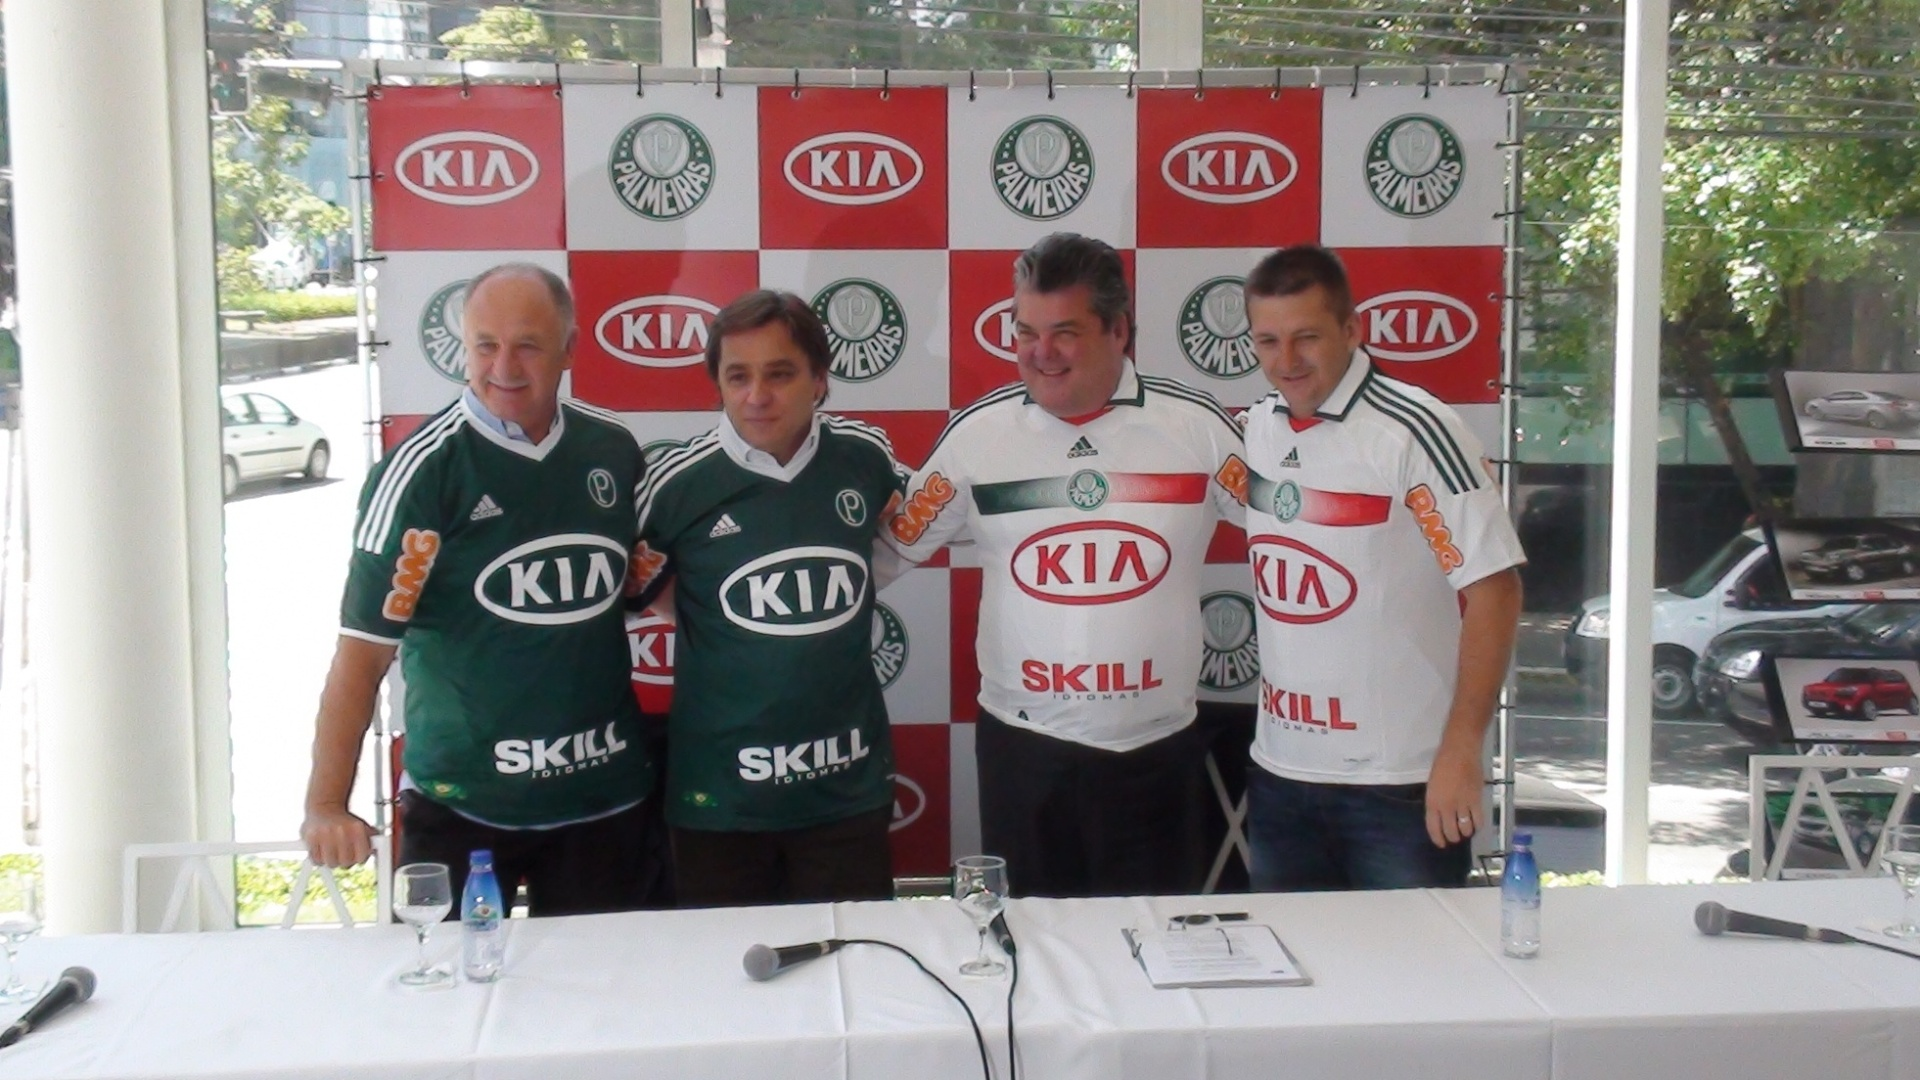 Palmeiras apresenta uniforme com a marca da Kia Motors